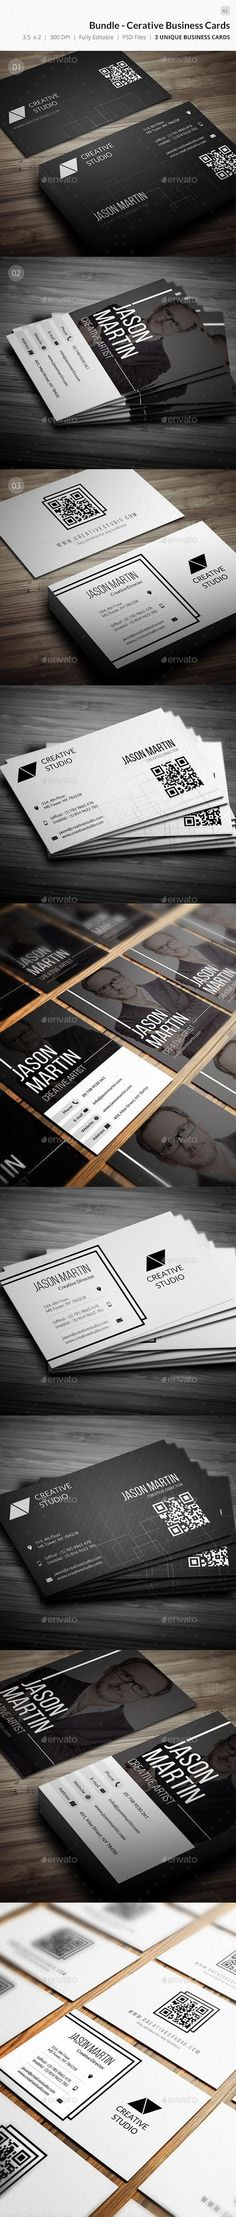 Buy Bundle - Corporate Employee Business Cards - 62 by bouncy on GraphicRiver. Creative Business Cards Bundle – Flat Business Cards for Any Individual/Companies. Here you can find each item Indivi. Business Card Design, Creative Business, Business Cards, Employee Id Card, Name Card Design, Indesign Templates, Name Cards, Graphic Design, Book Nooks